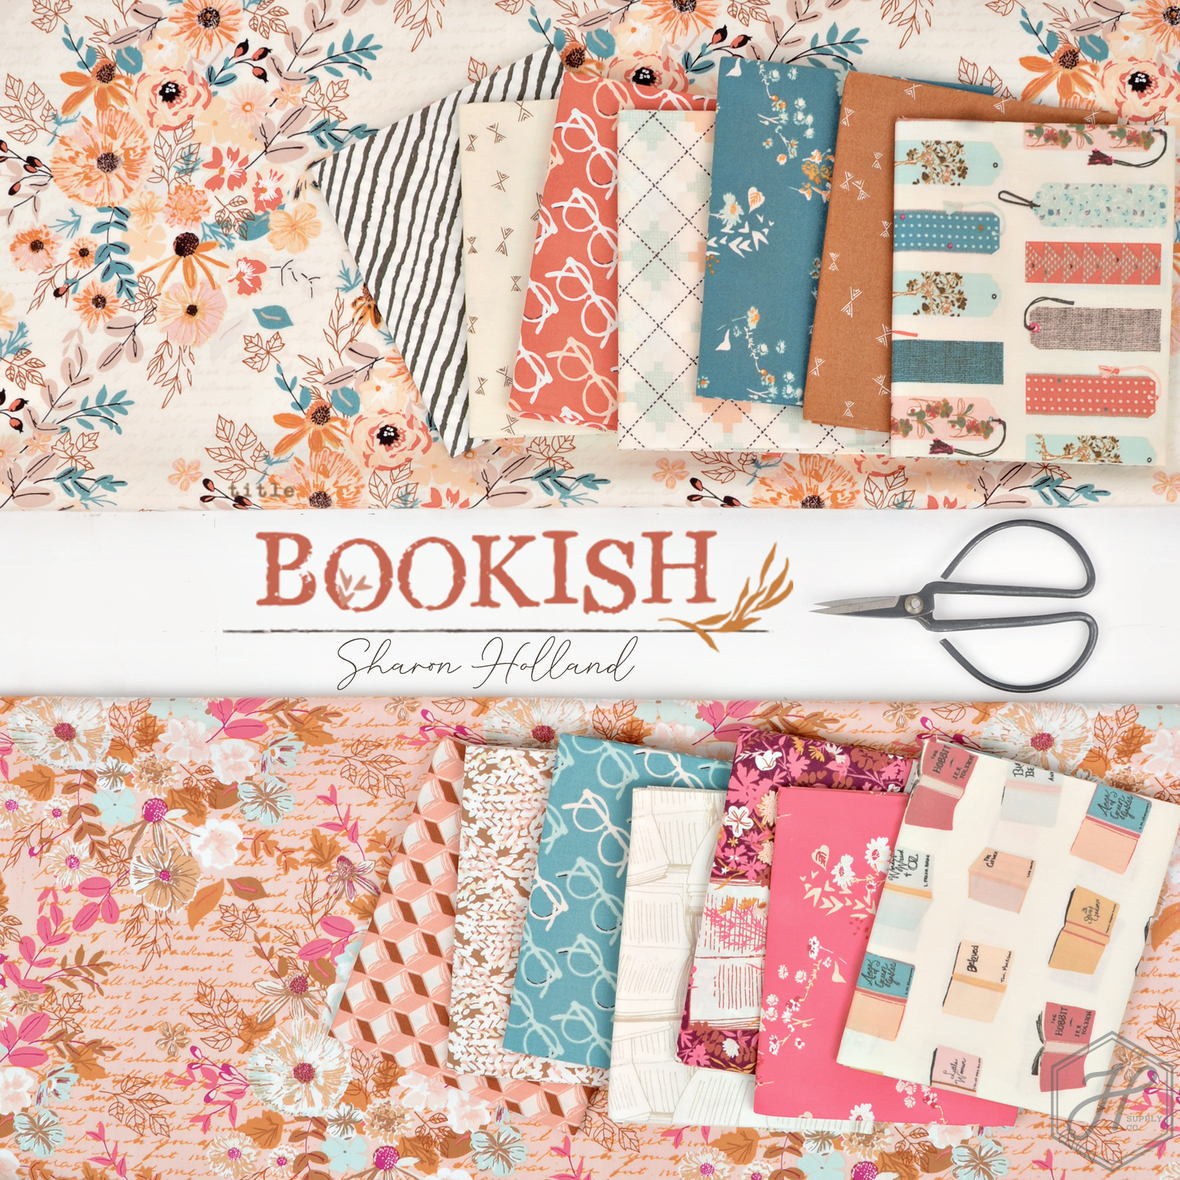 Bookish Fabric Sharon Holland for Art Gallery at Hawthorne Supply Co